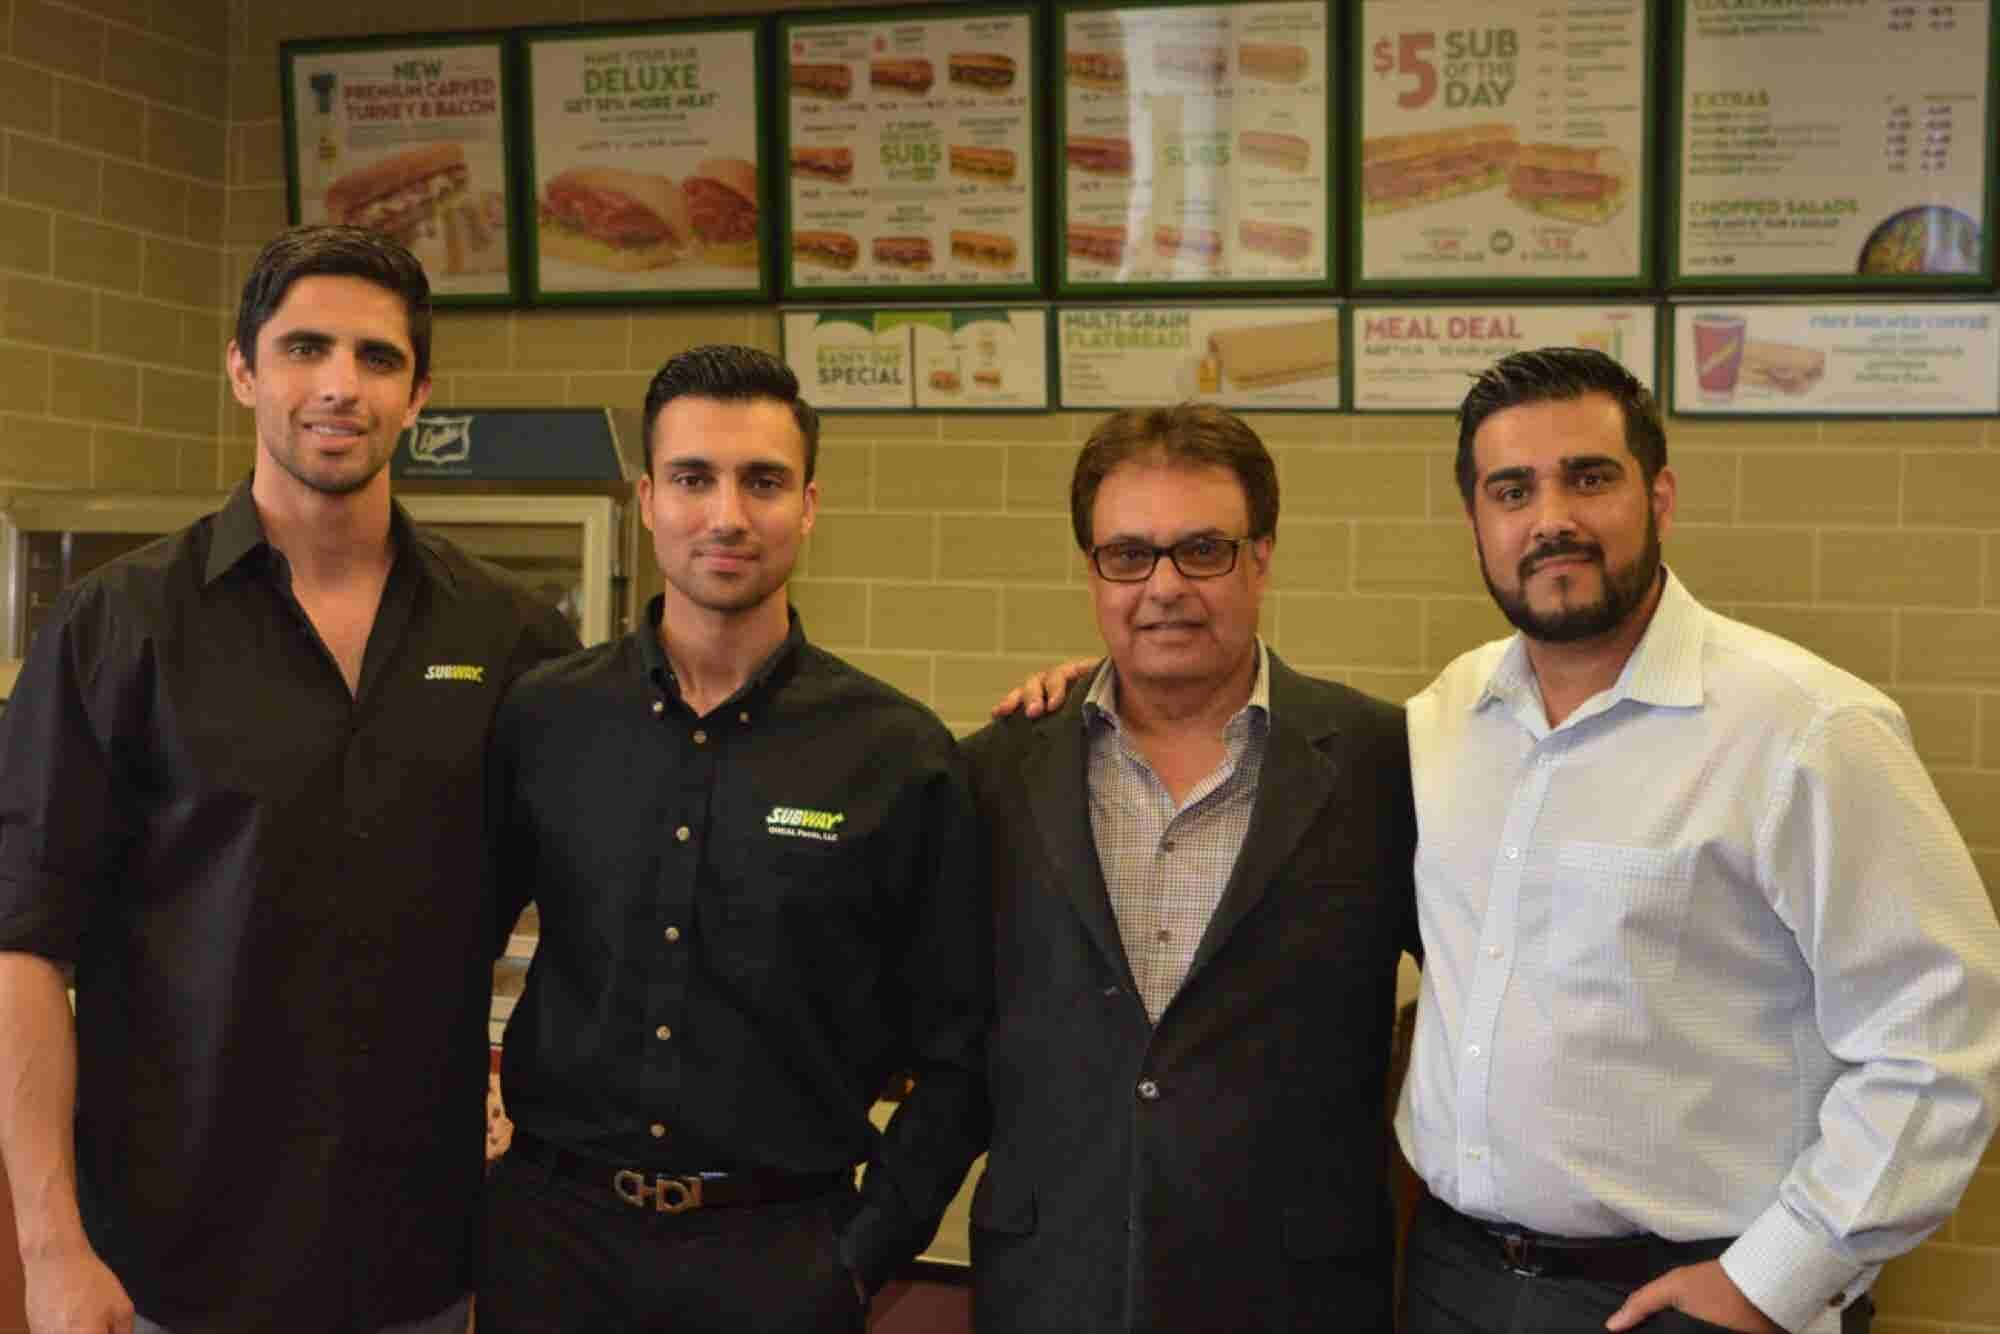 The Grewal Family Franchises Together and Thrives Together